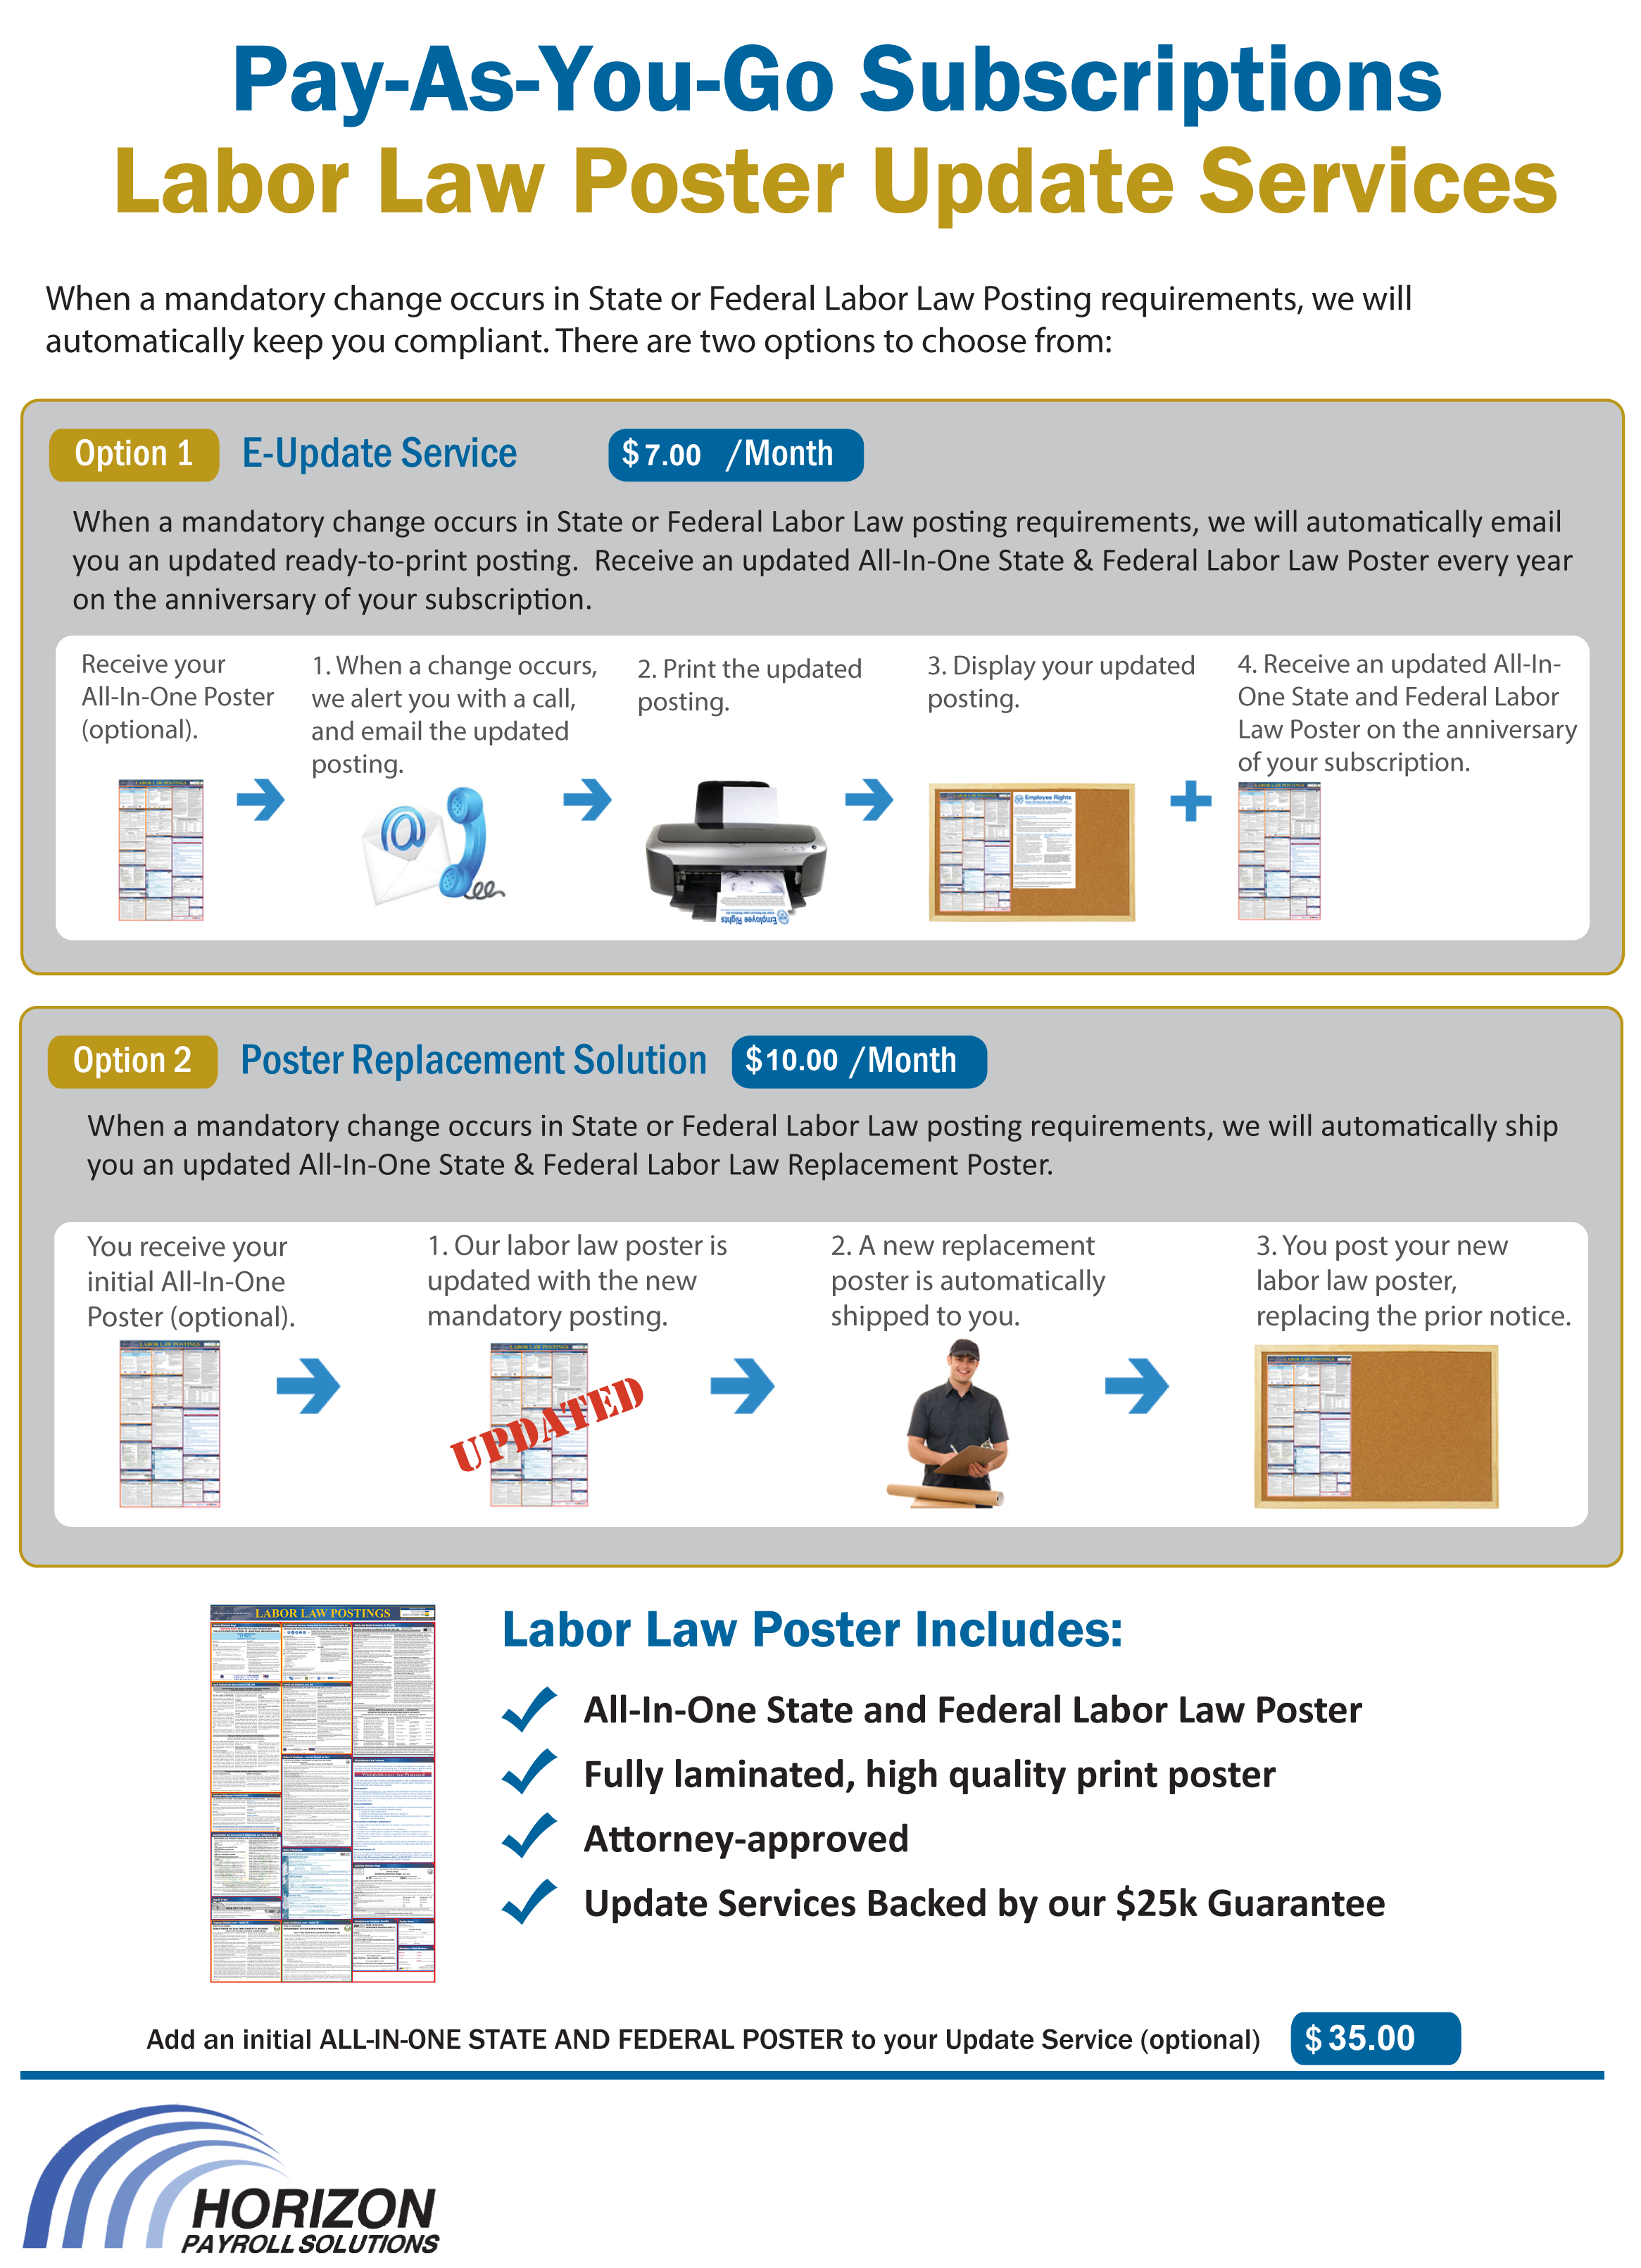 Horizon_Payroll_40855_Pay-As-You-Go_Update_Services.png